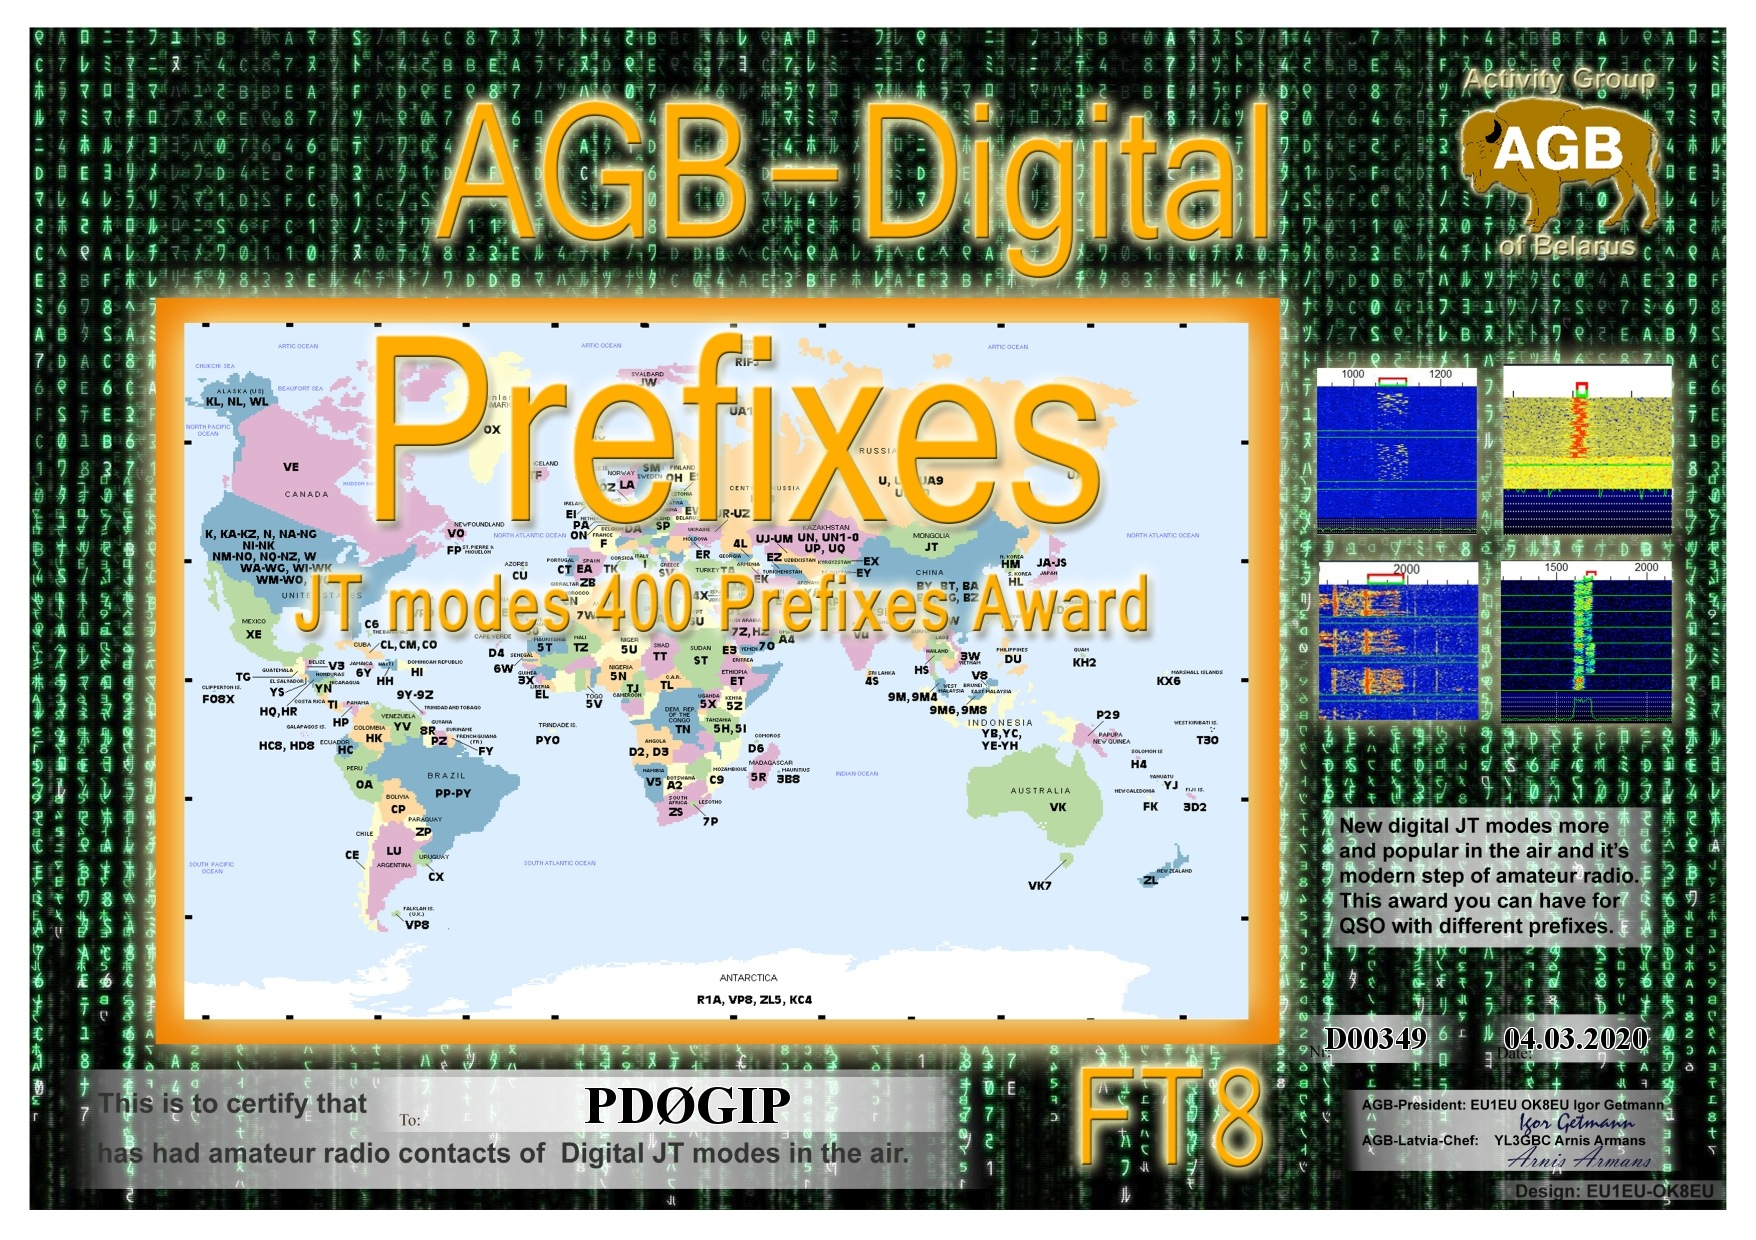 PD0GIP PREFIXES FT8 400 AGB